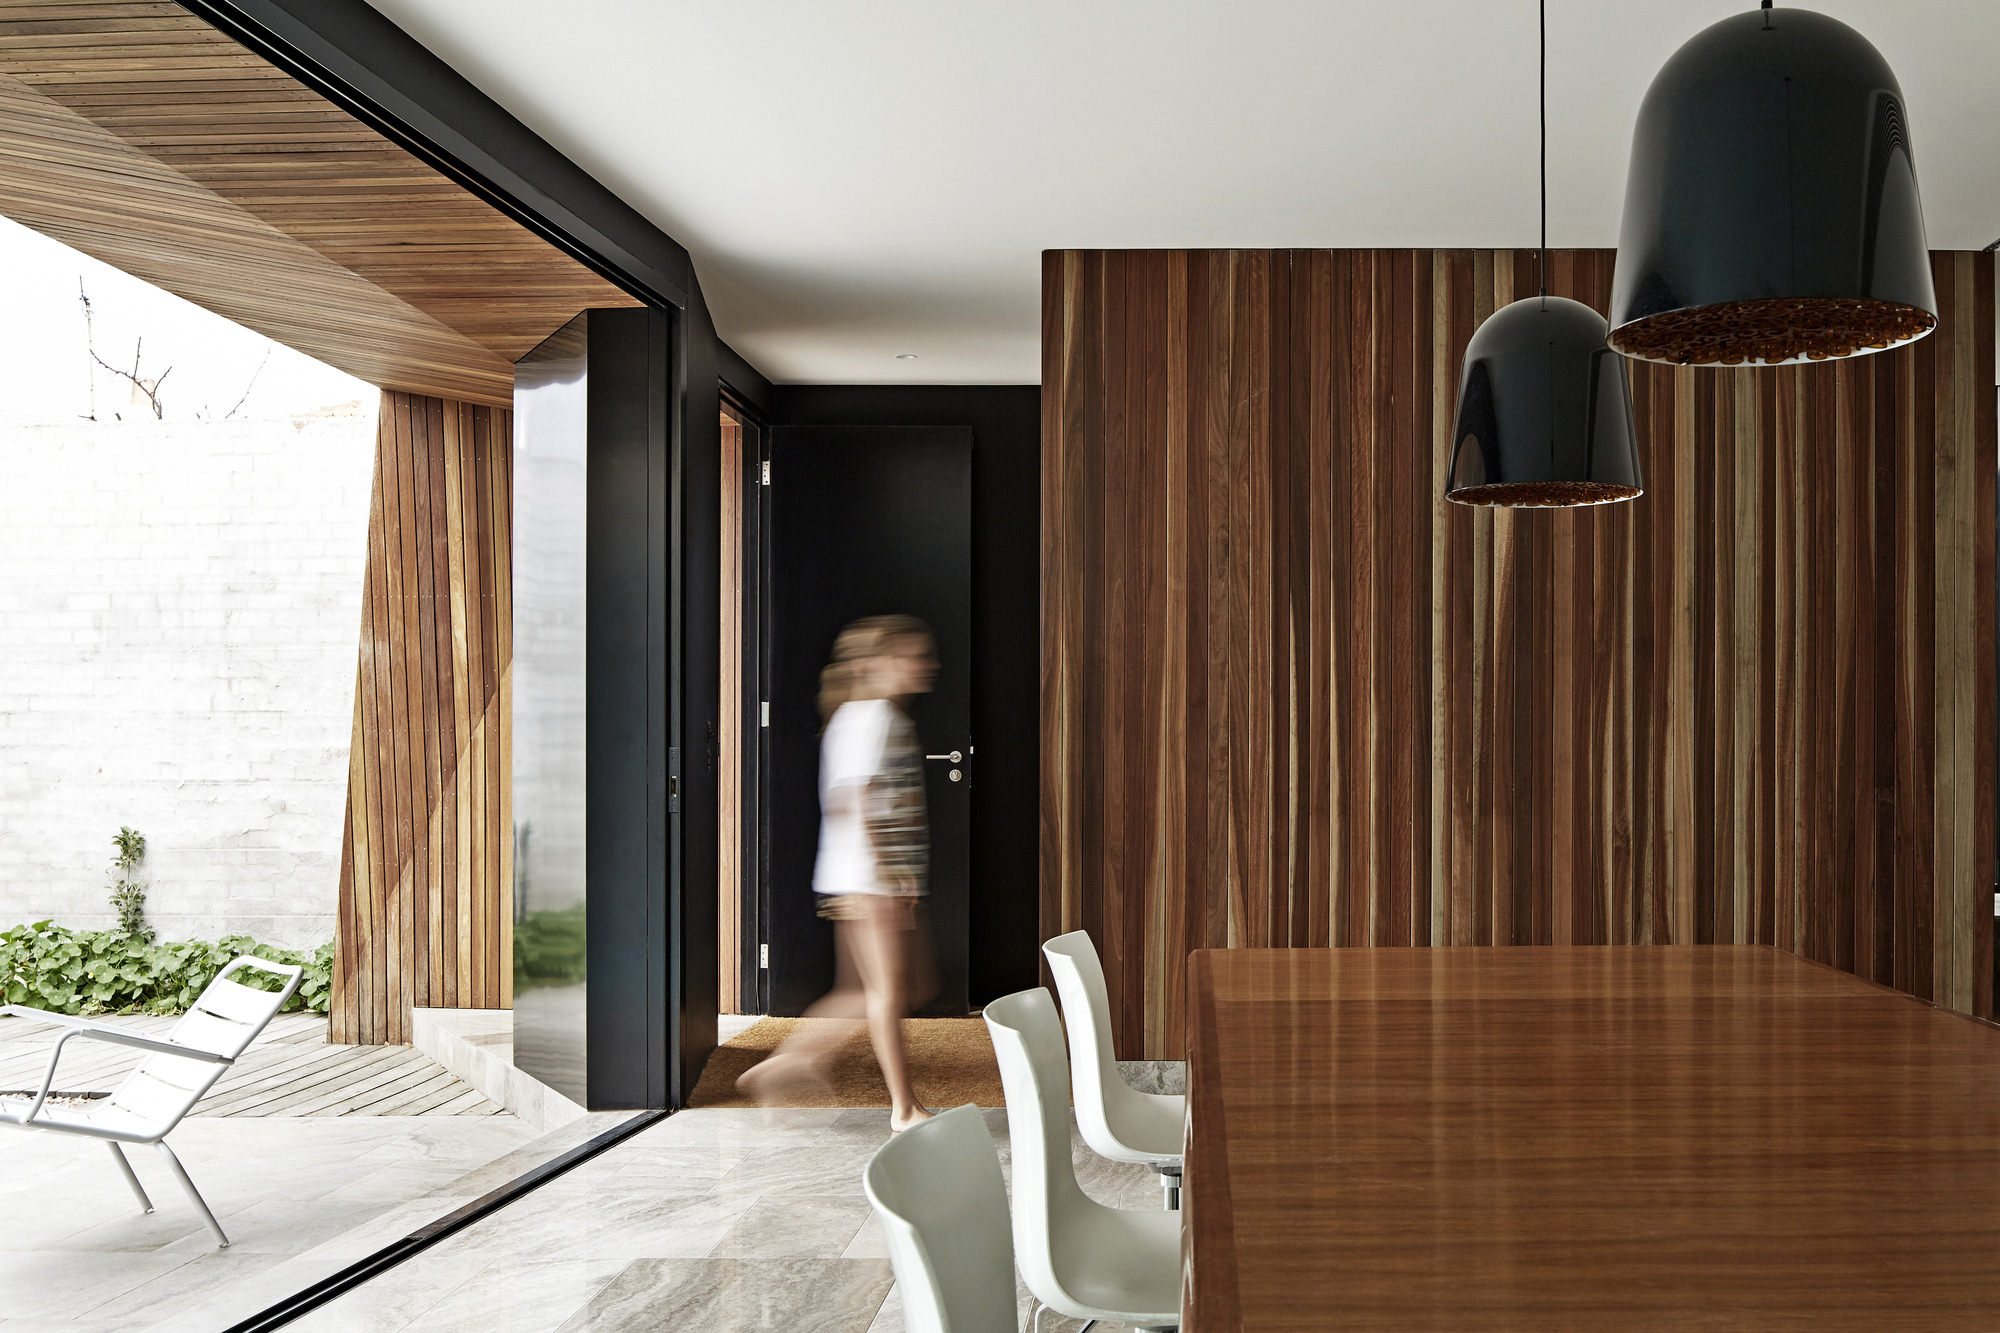 House 3 / Coy Yiontis Architects (9)